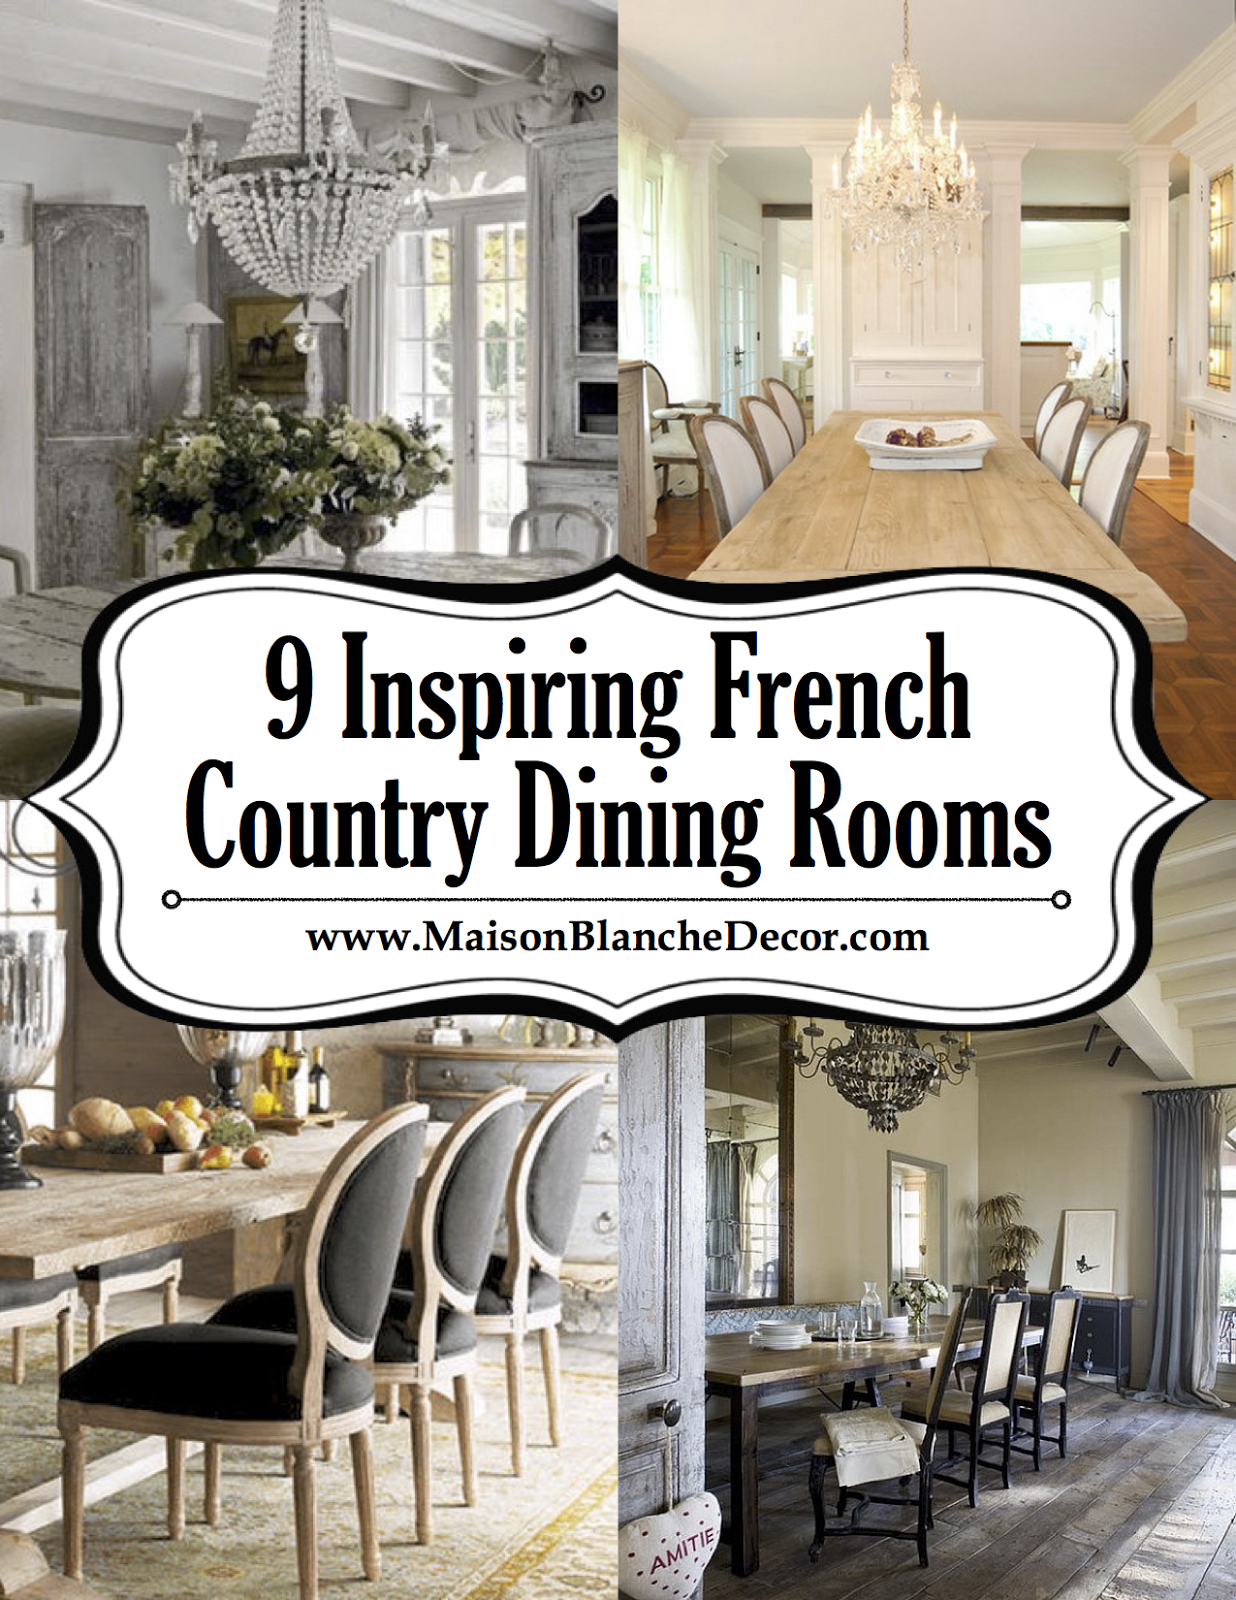 9 Inspiring French Country Dining Rooms - Maison Blanche Decor